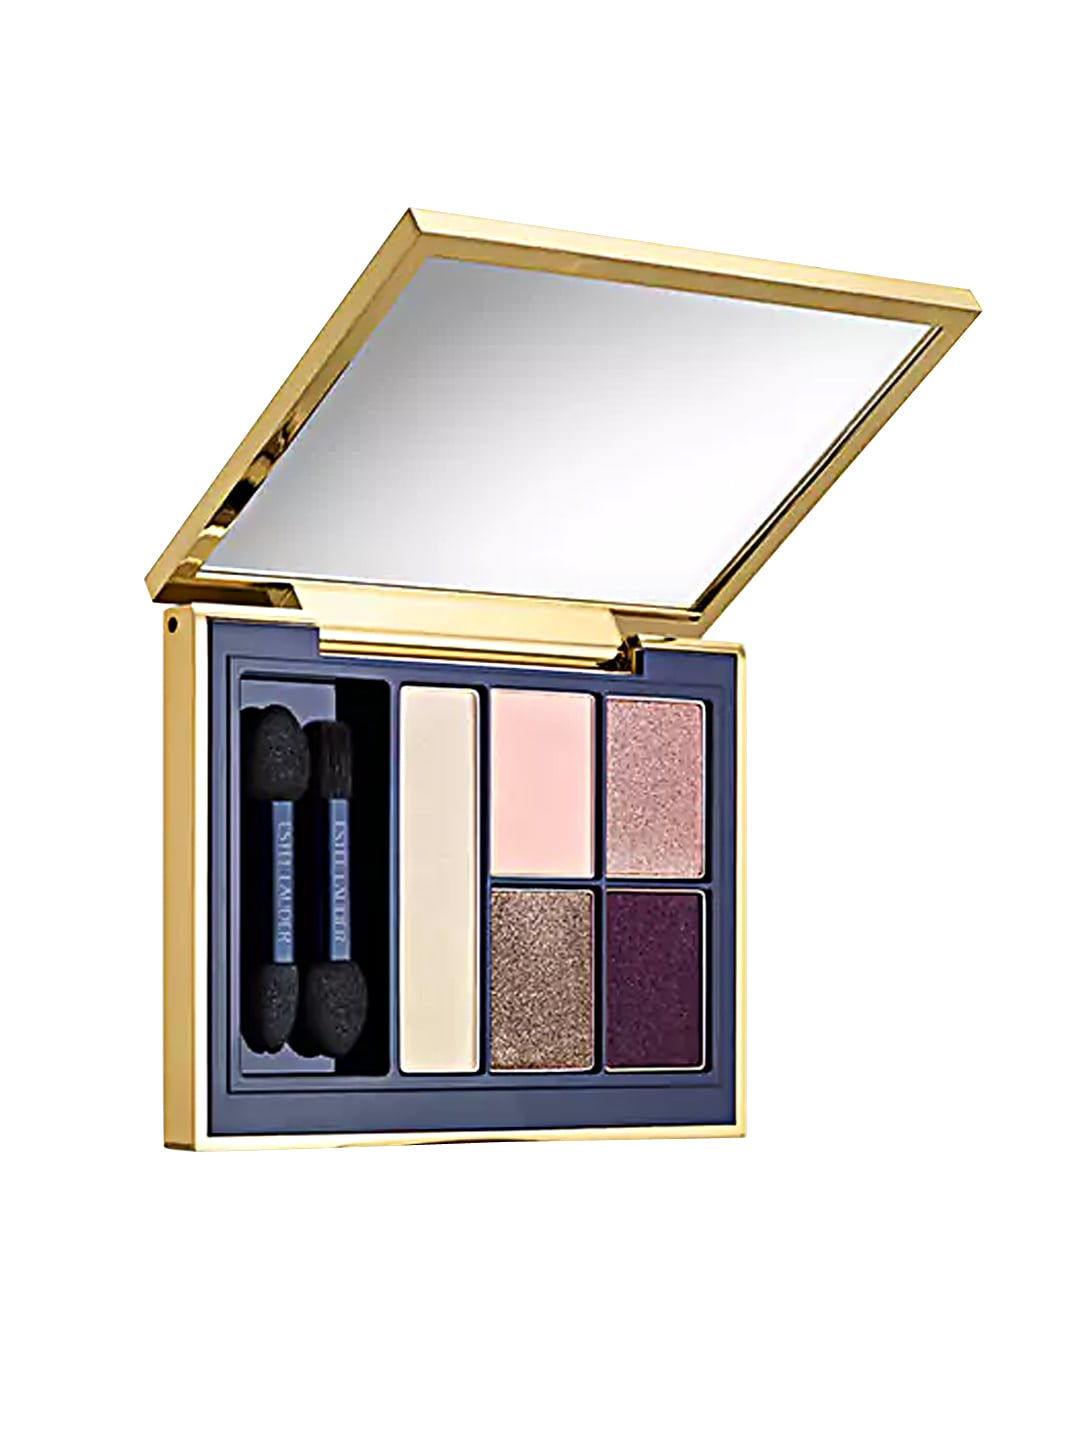 Estee Lauder Currant Desire Pure Color Envy Sculpting EyeShadow 5-Color Palette image